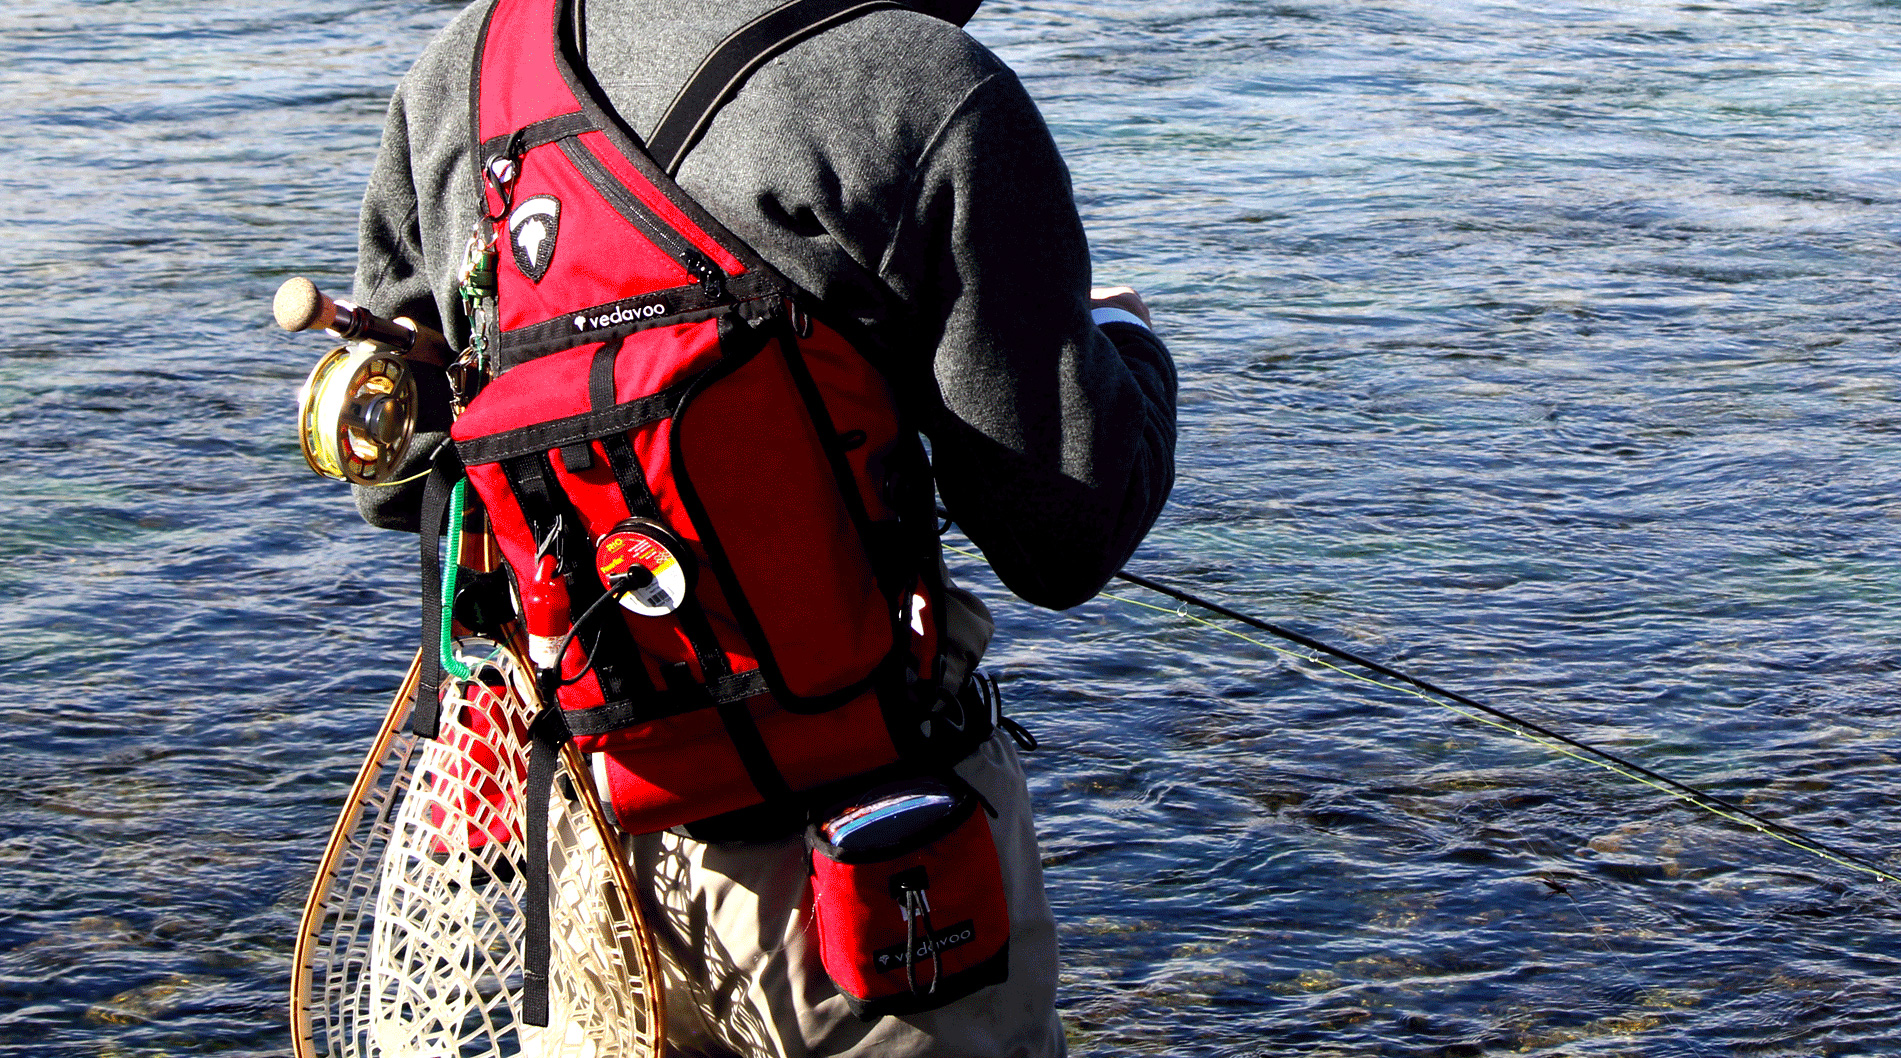 With vedavoo it 39 s the little things hatch magazine for Fly fishing pack